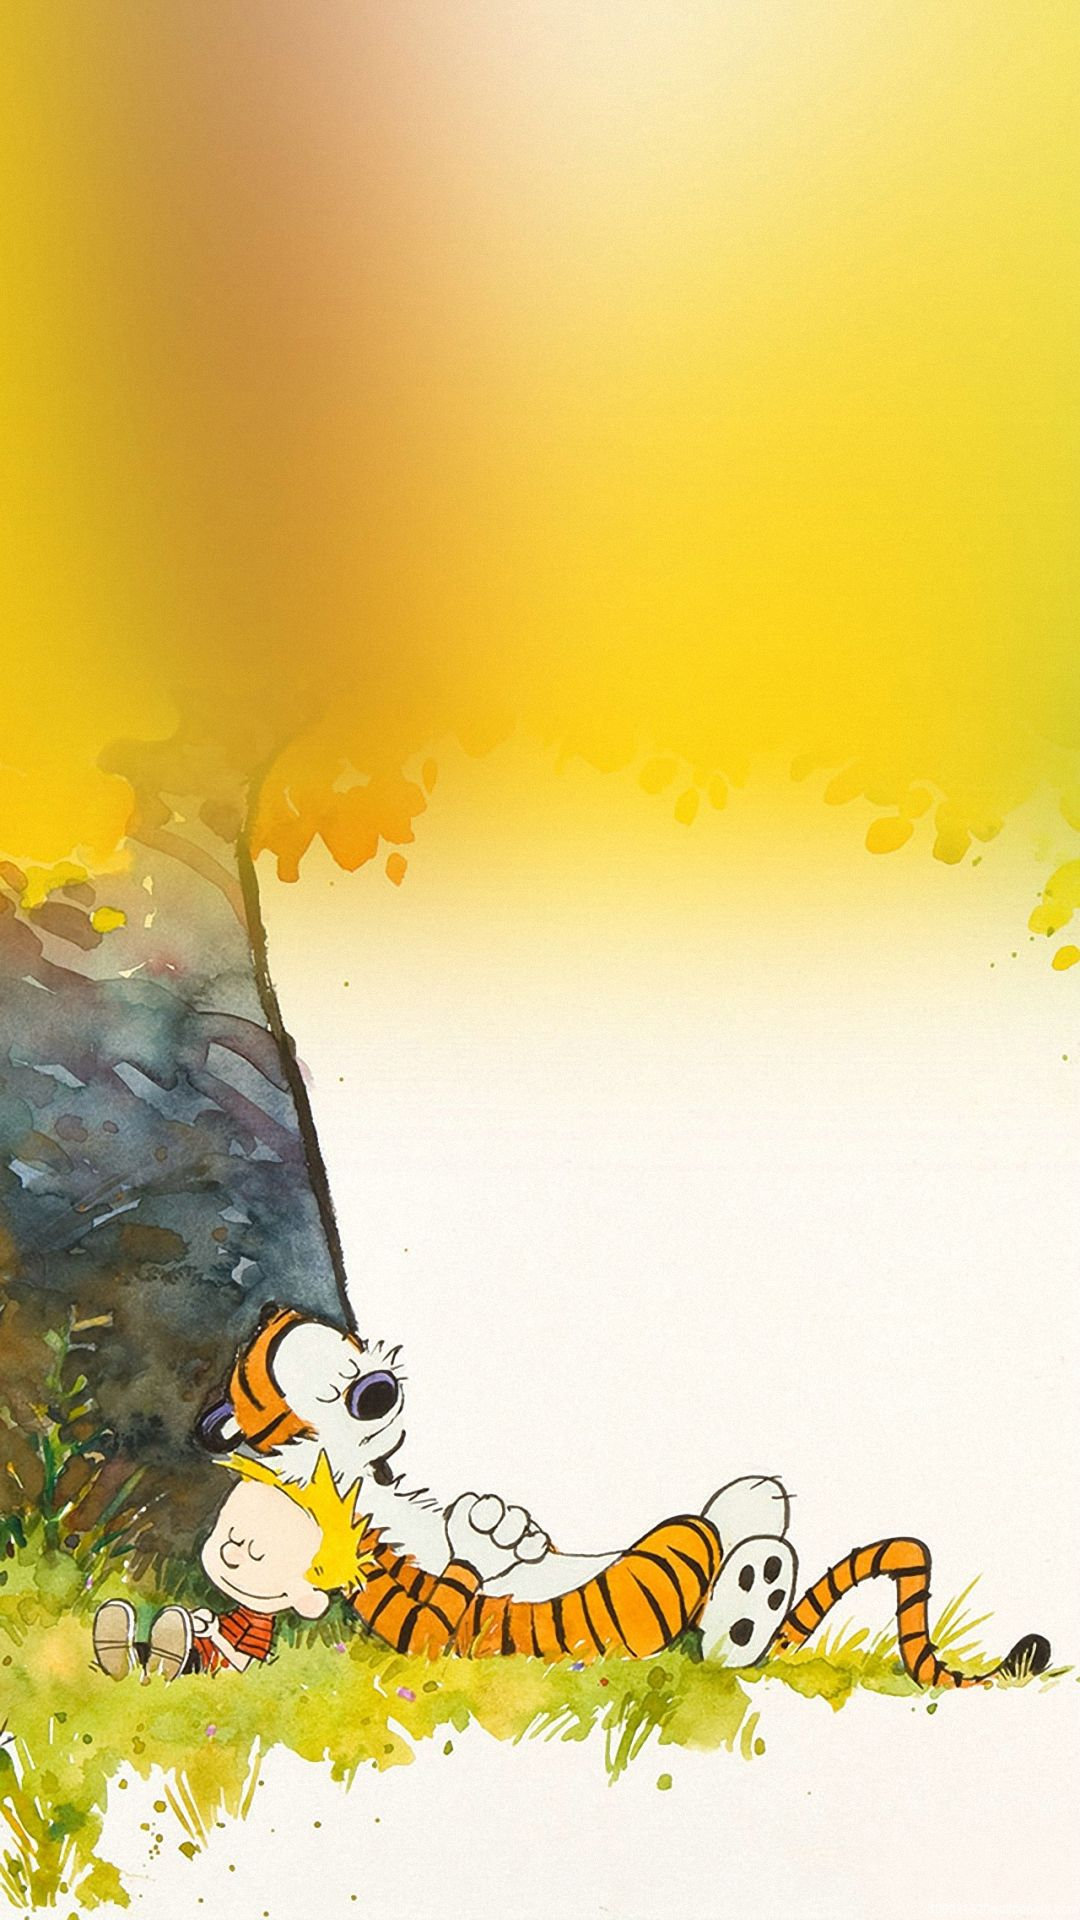 Http Mobw Org 16016 Calvin And Hobbes Wallpaper For Android Html